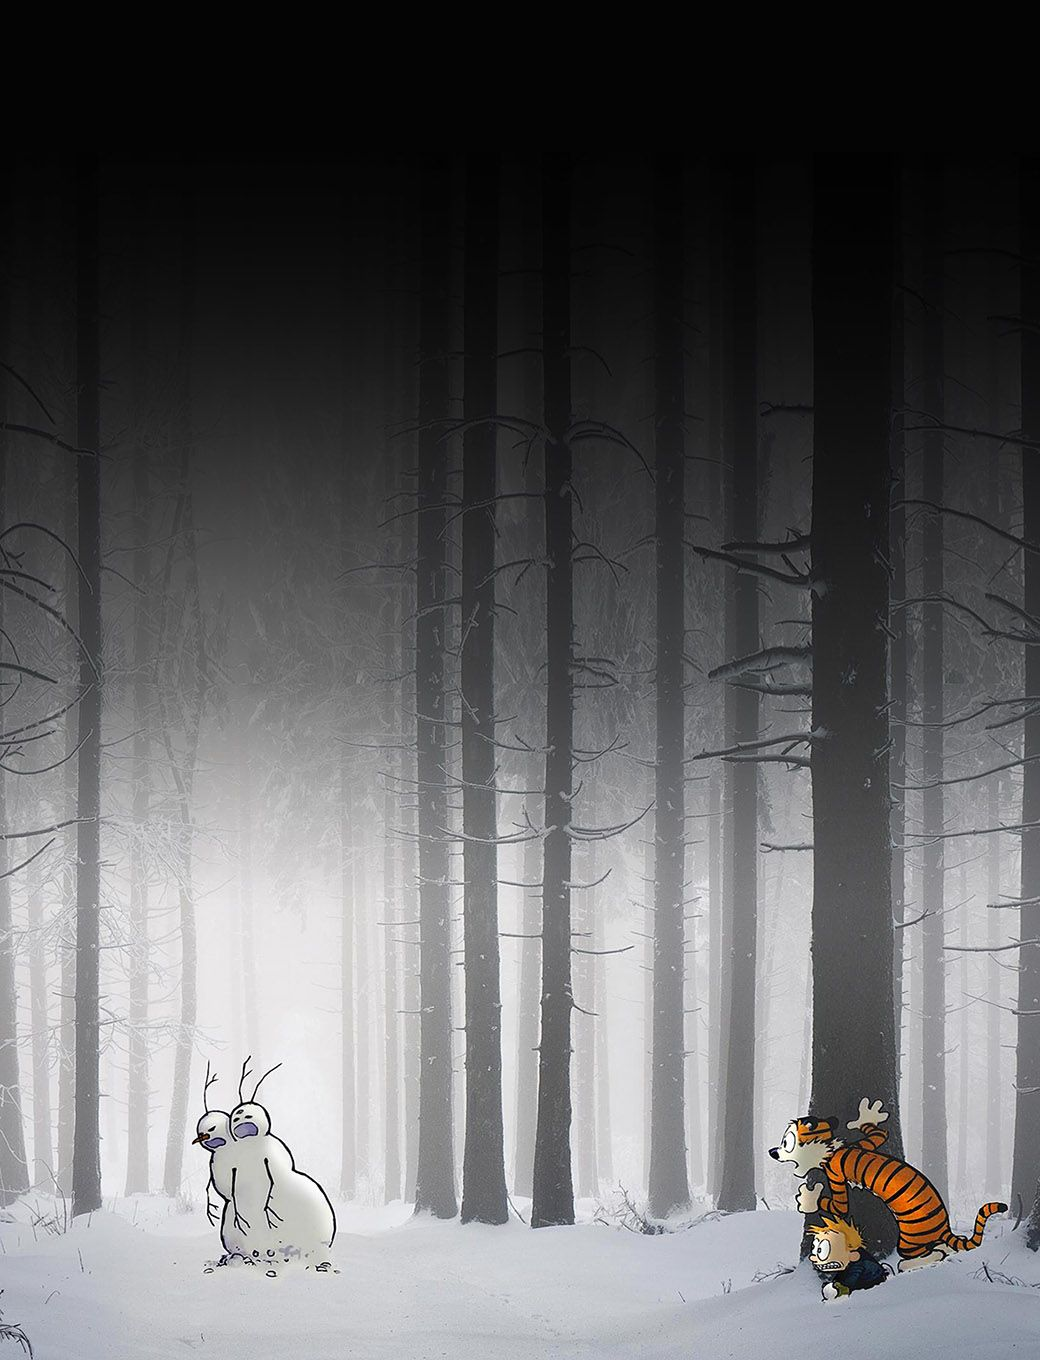 Freeios7 Calvin-hobbes-hiding - Parallax Hd Iphone Ipad